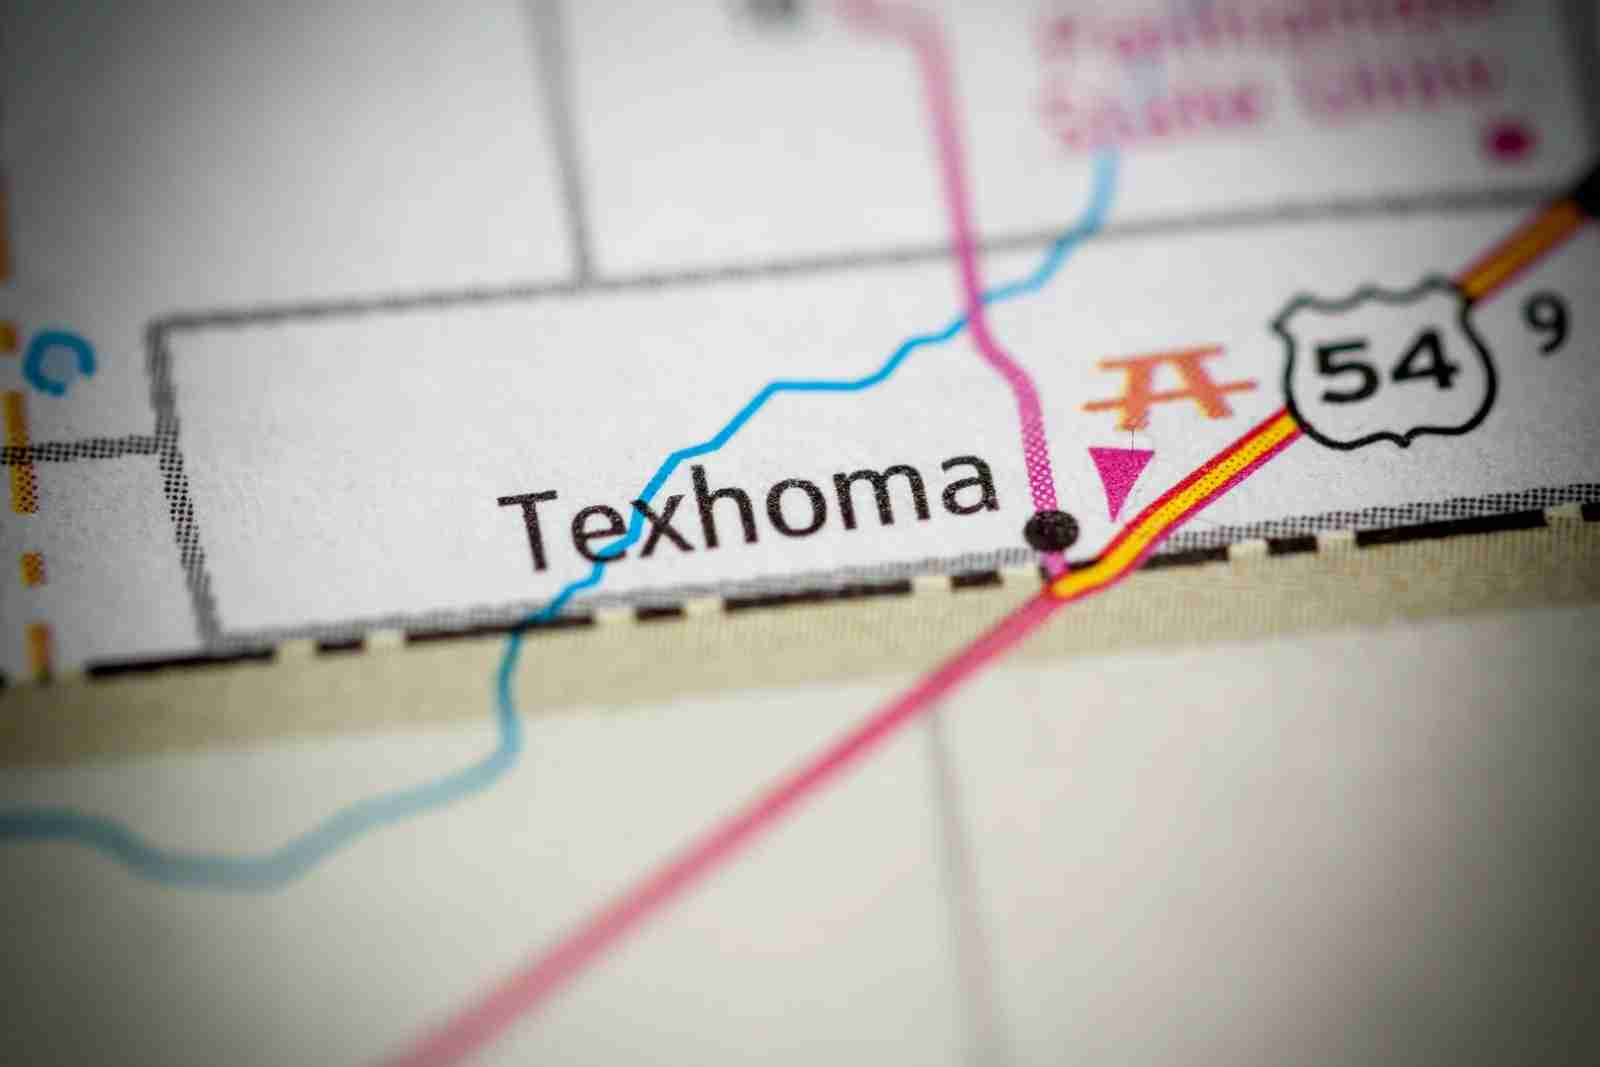 Texhoma. (Photo by SevenMaps/Shutterstock)